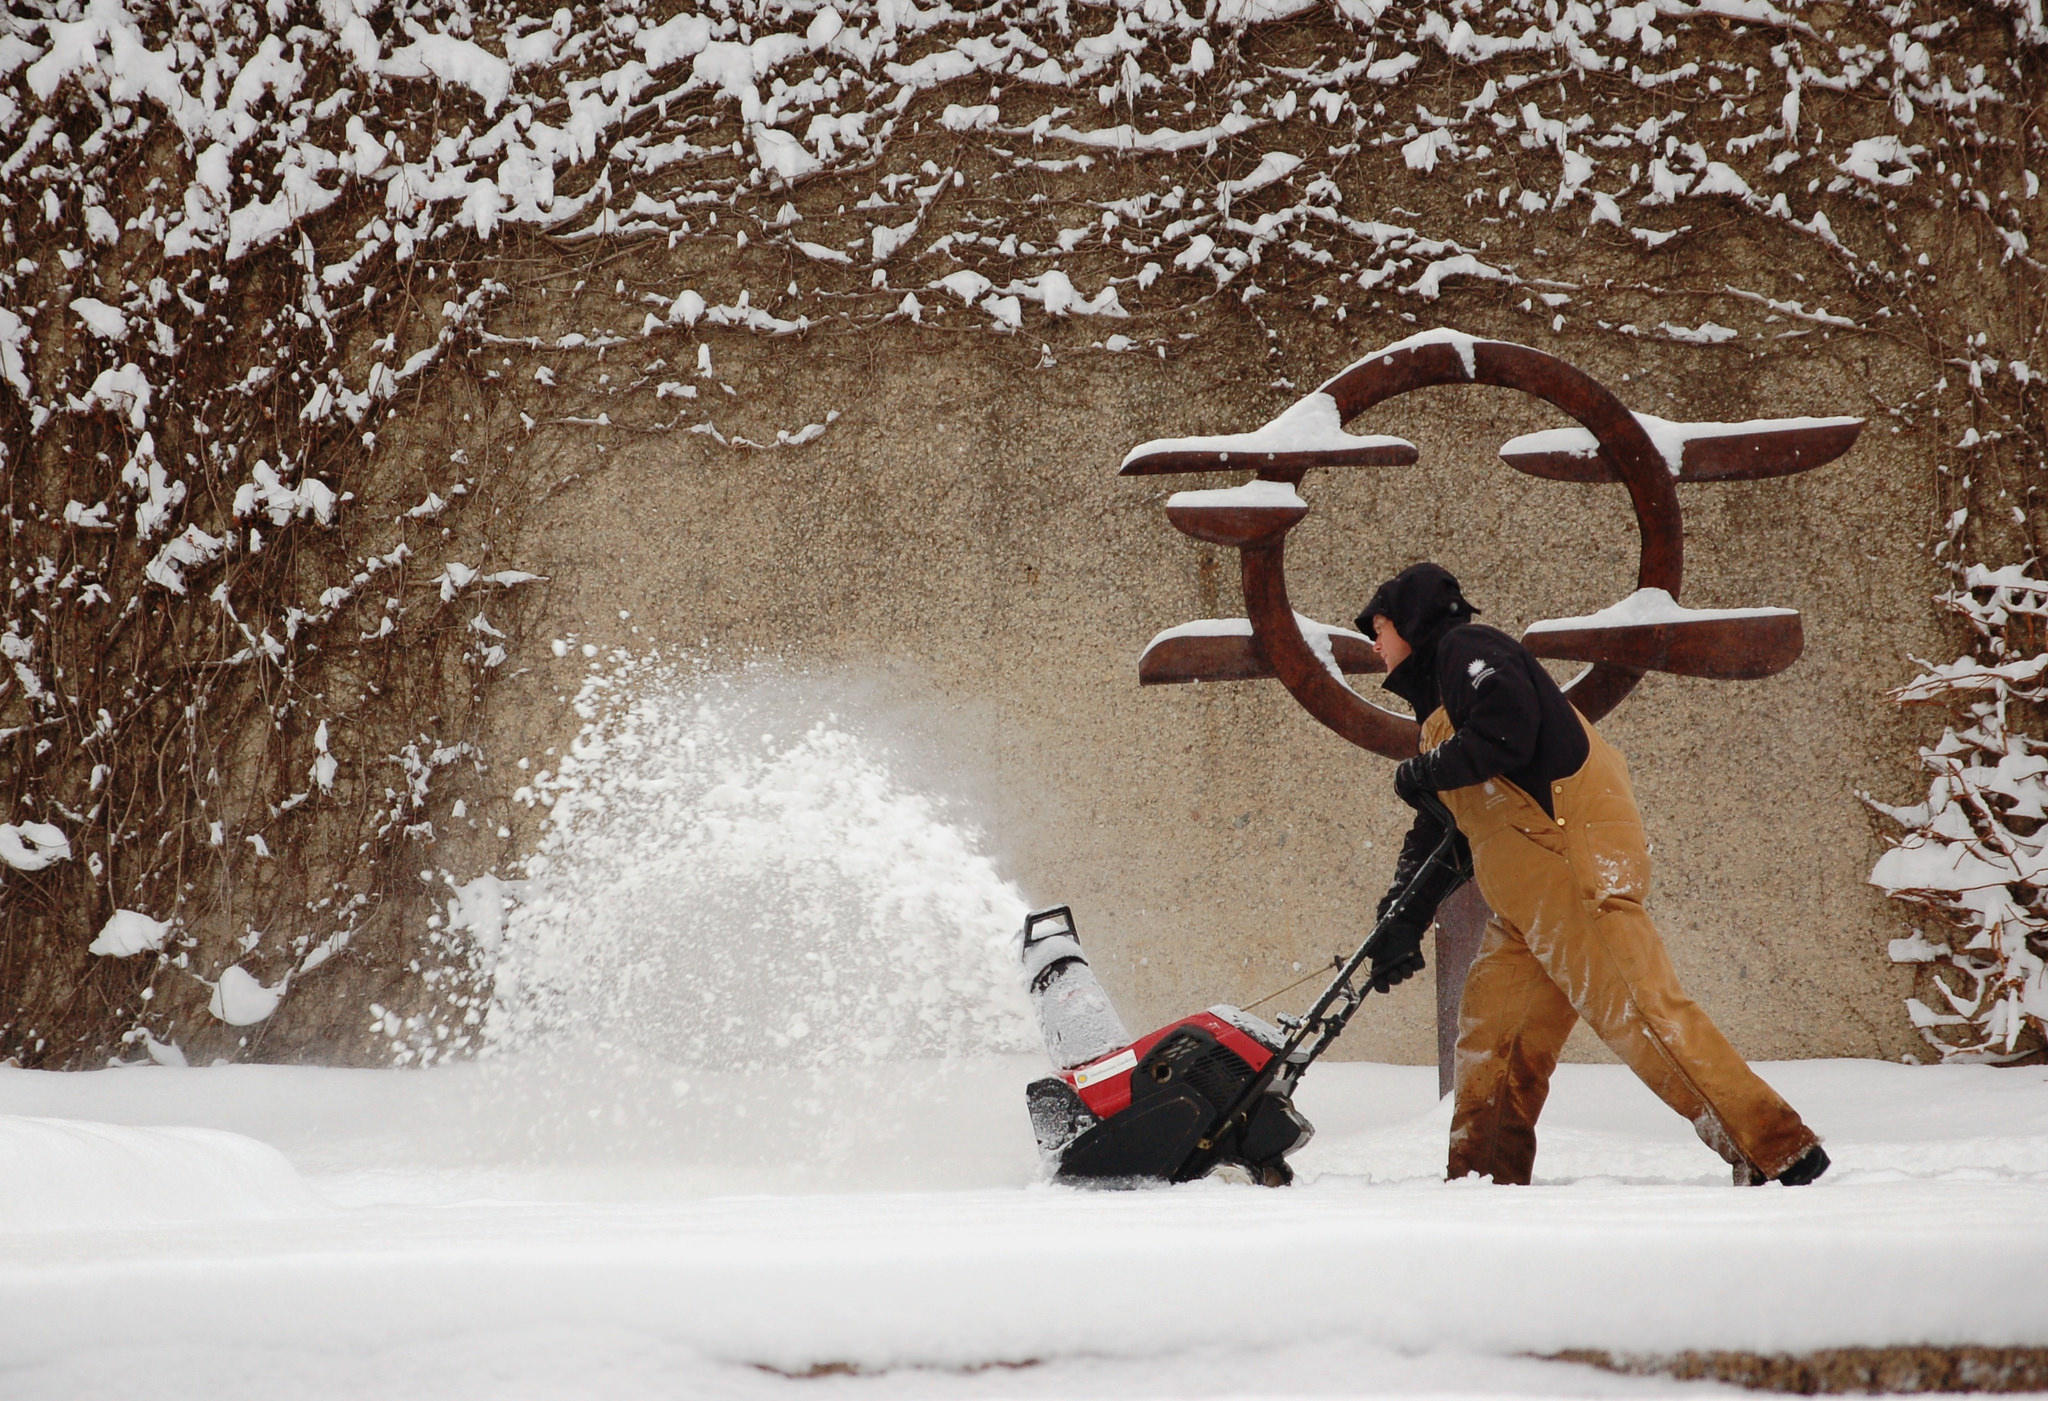 A member of the Smithsonian Garden staff clears snow in the Hirshhorn Sculpture Garden. (Photo courtesy Smithsonian Gardens)